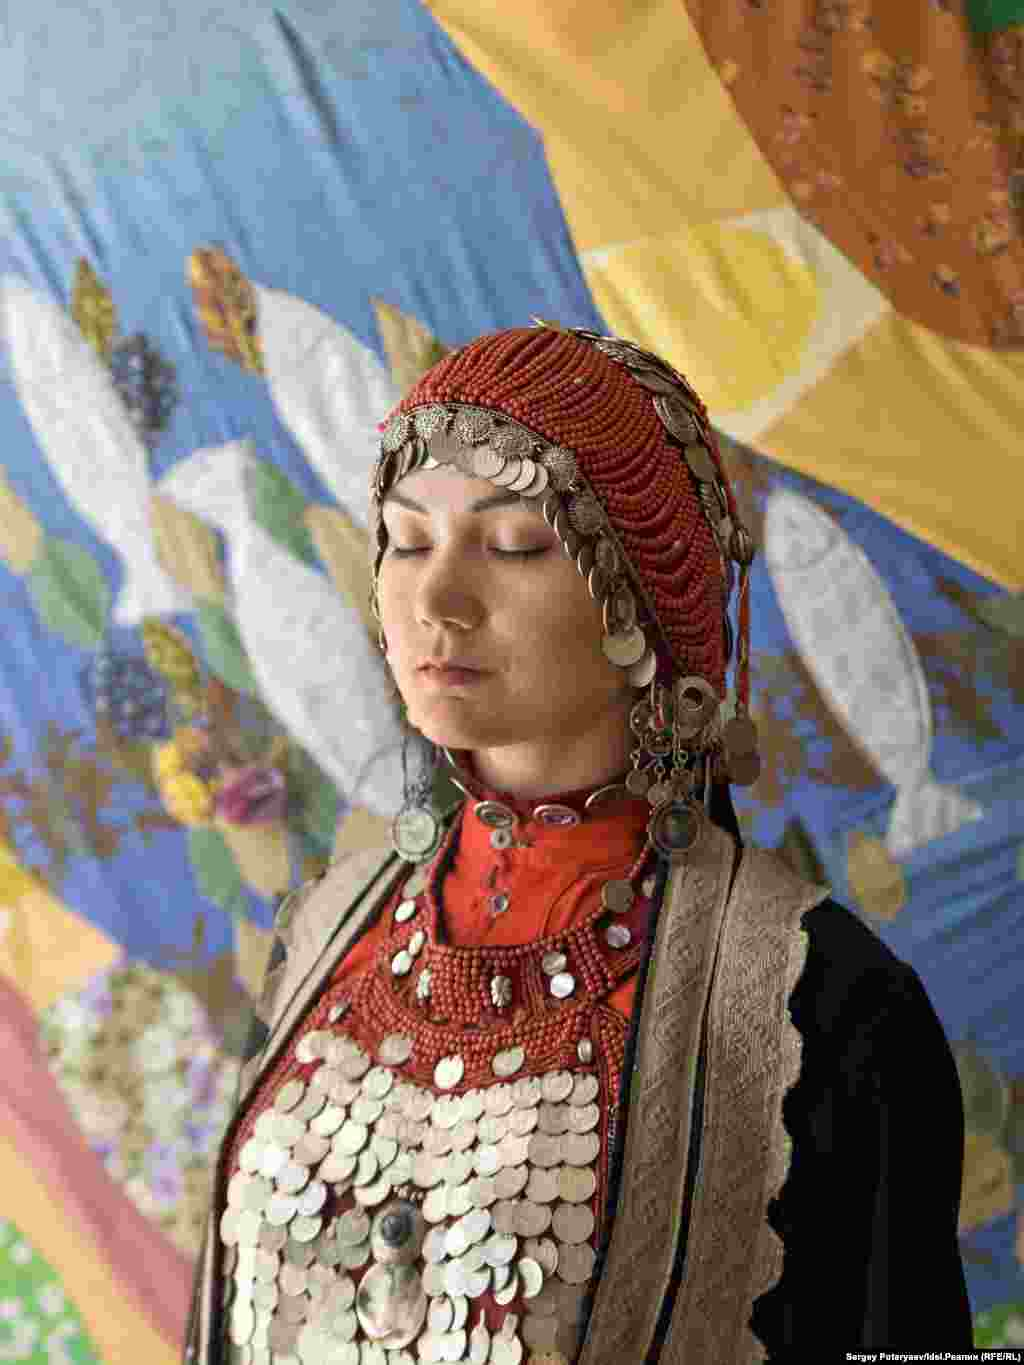 "Regina 29 years old, art historian ""I think that the goal for a Bashkir girl is to be worthy of her nation and its history. It's important, while possessing gadgets, to build traditions into modern realities. I have made the breastplate necklace myself and I plan to use ethnic patterns in my wardrobe further on."""